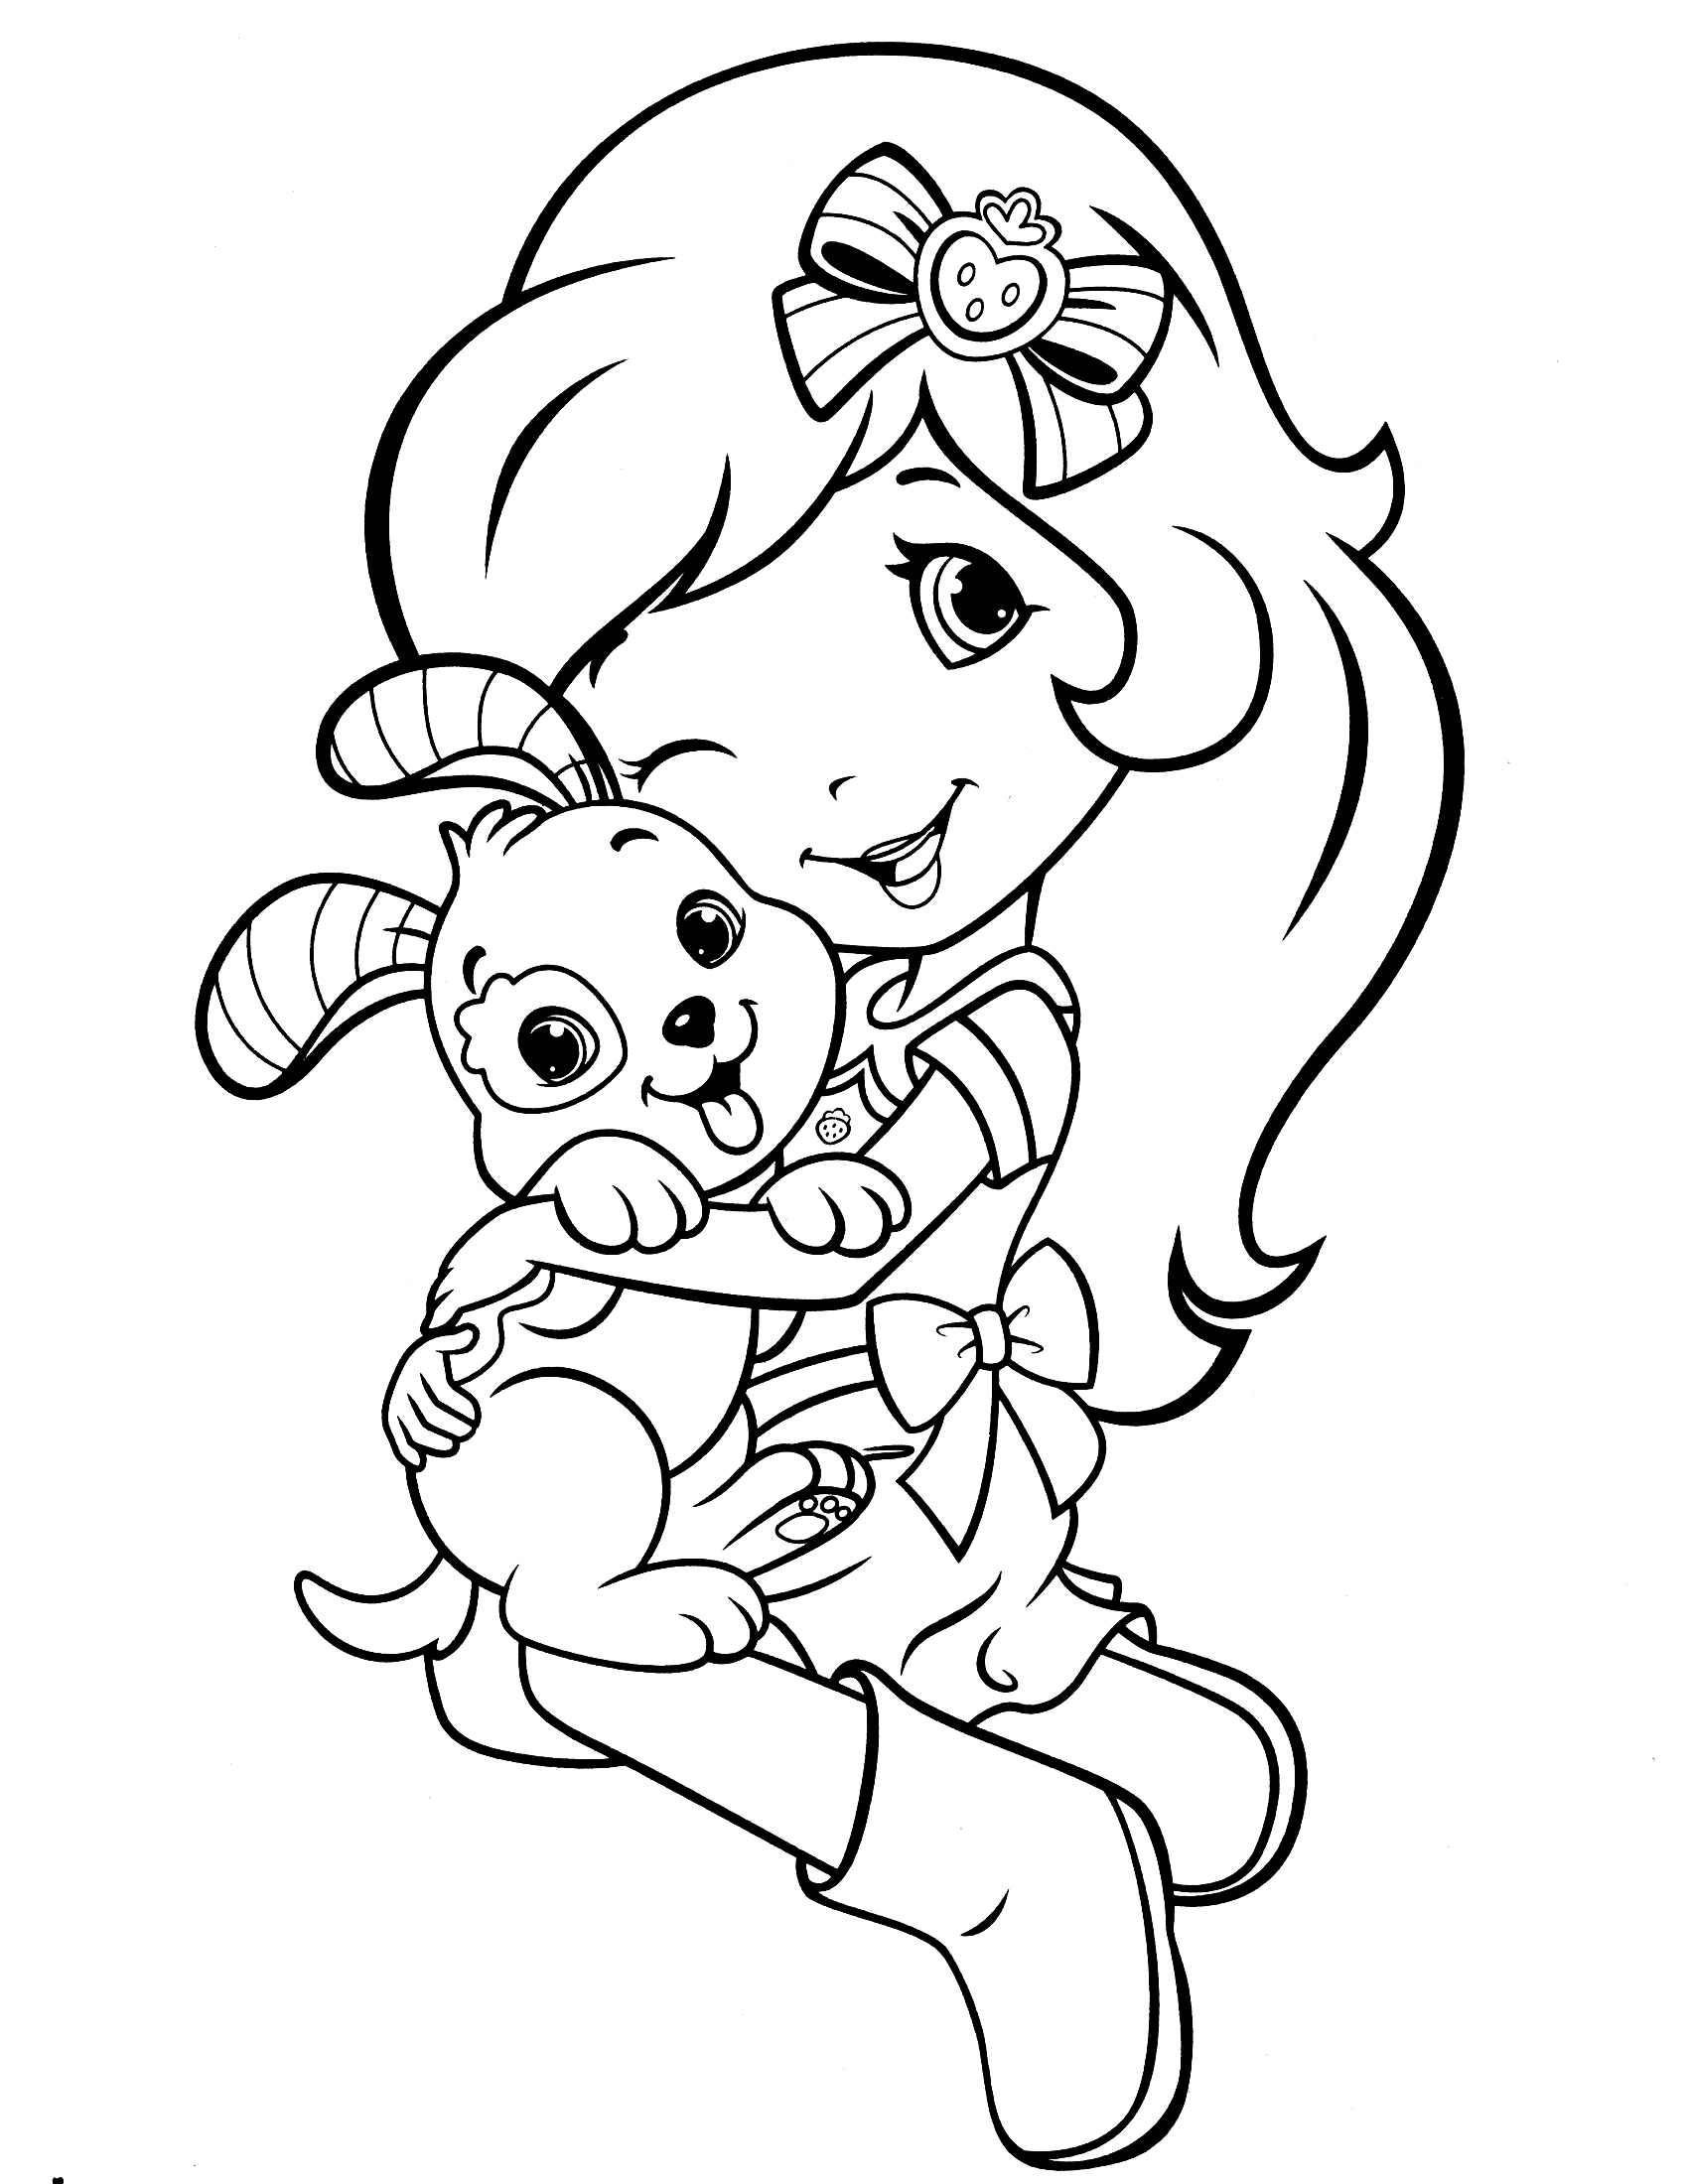 Strawberry Shortcake Coloring Pages Cool Coloring Pages 25